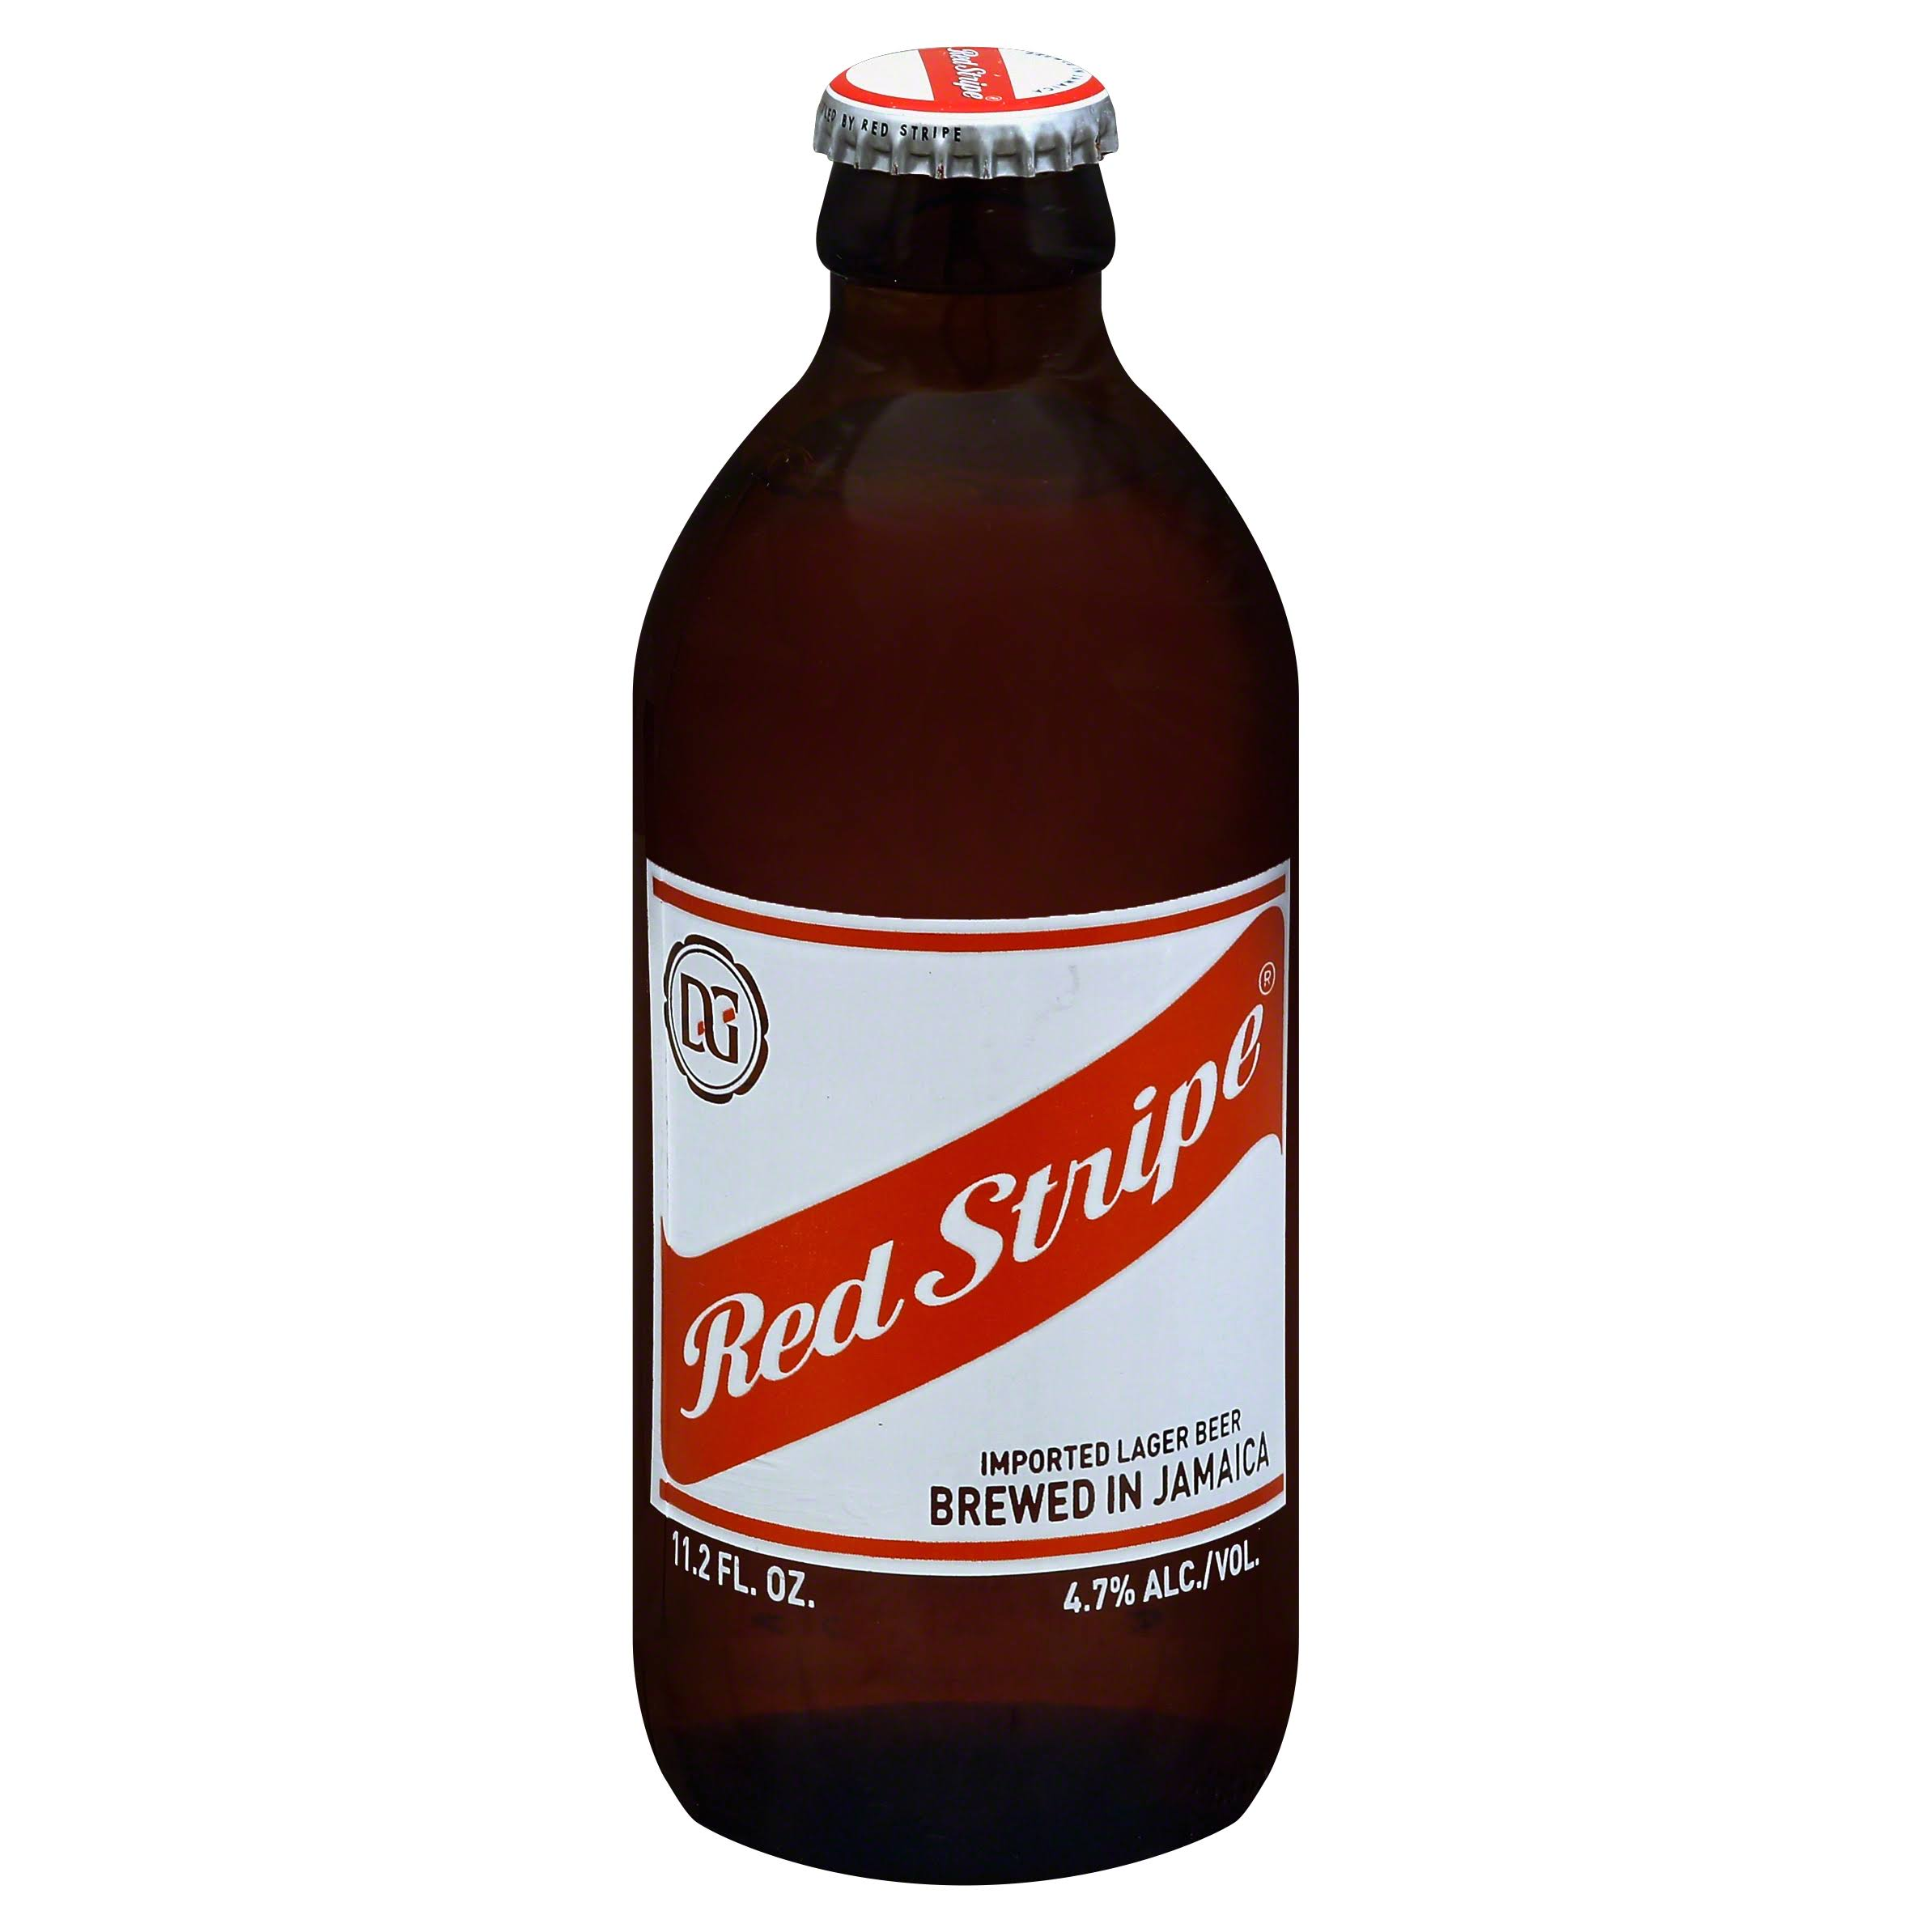 Red Stripe Beer, Imported Lager - 11.2 fl oz